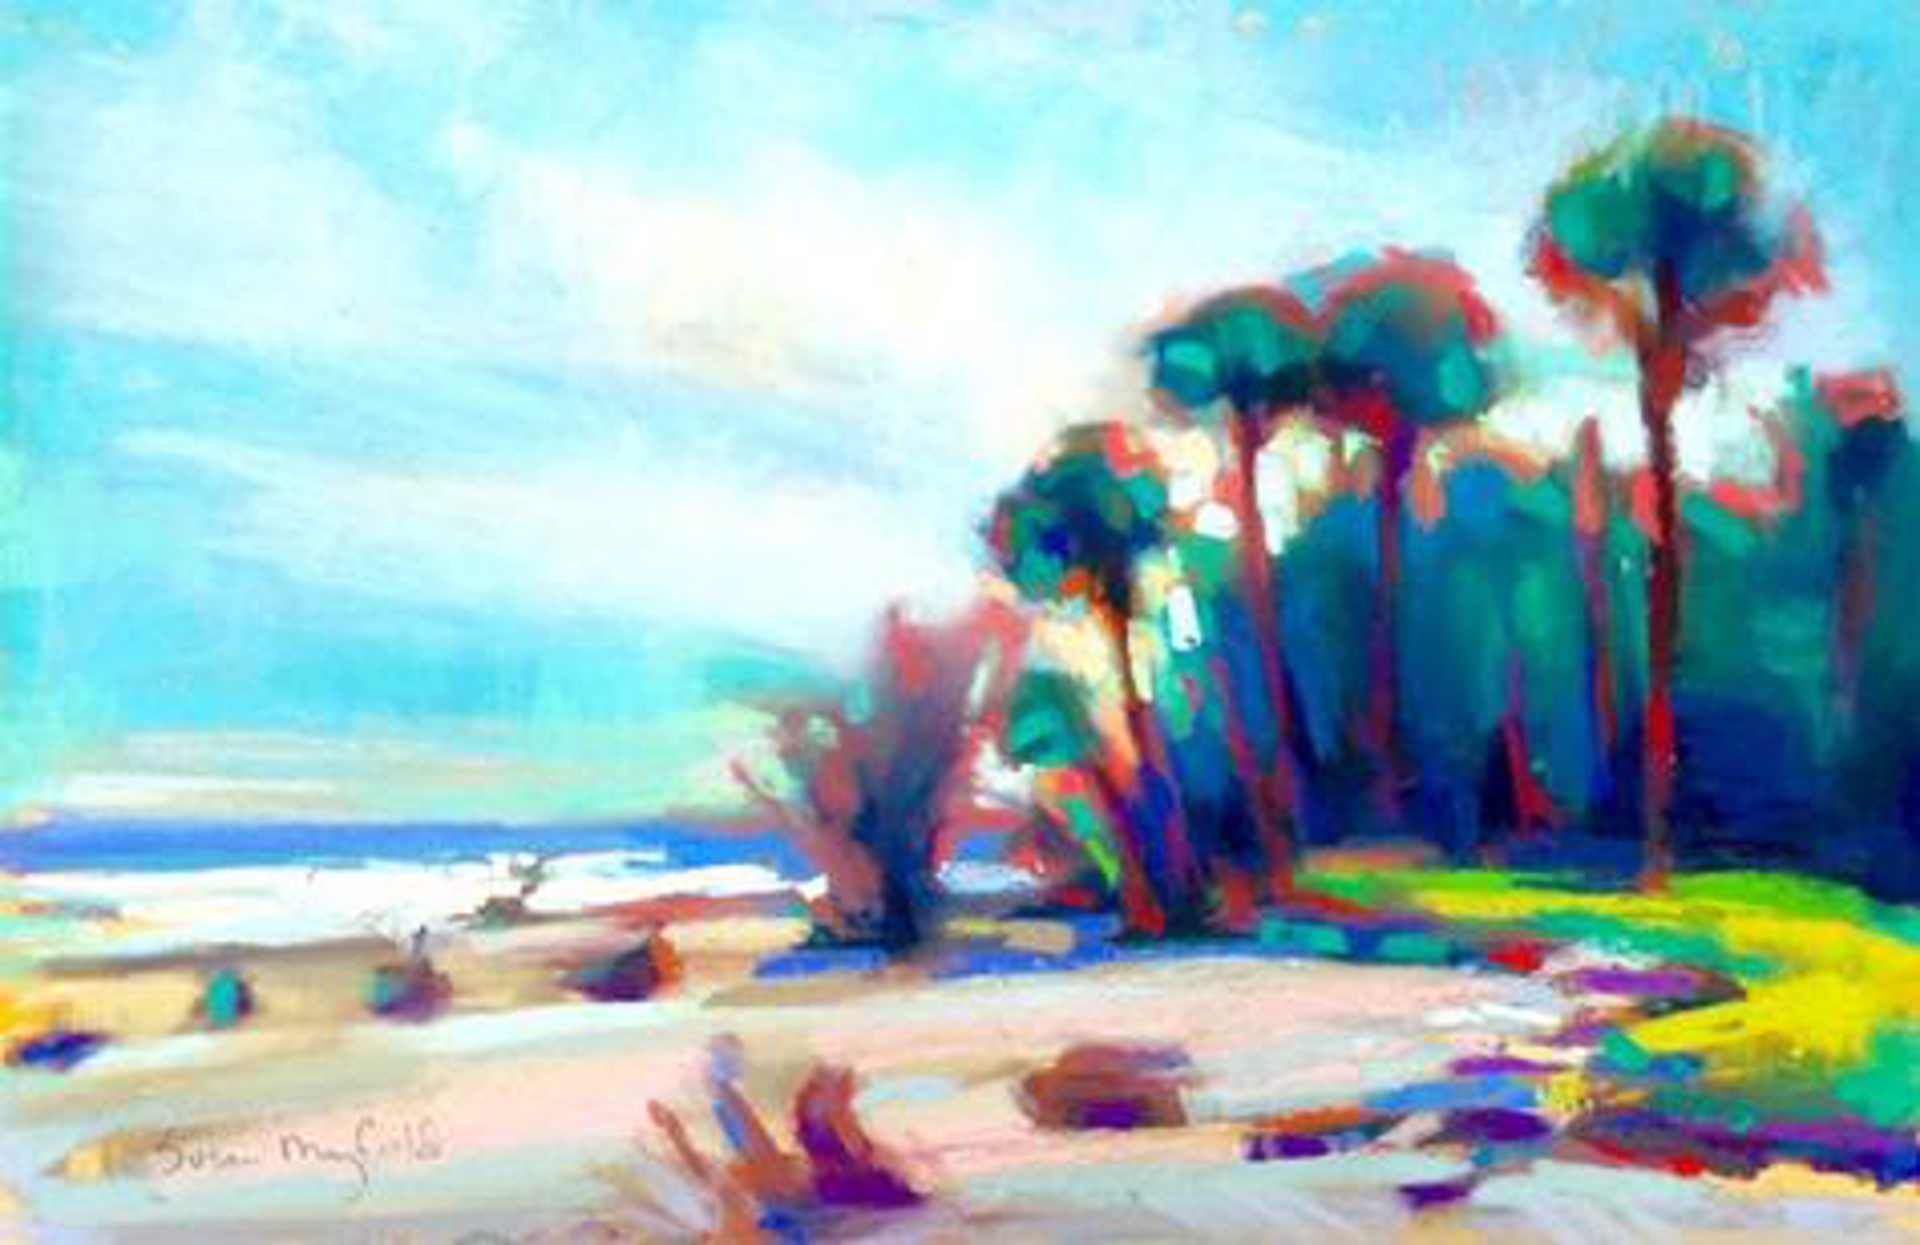 Hunting Island by Susan Mayfield